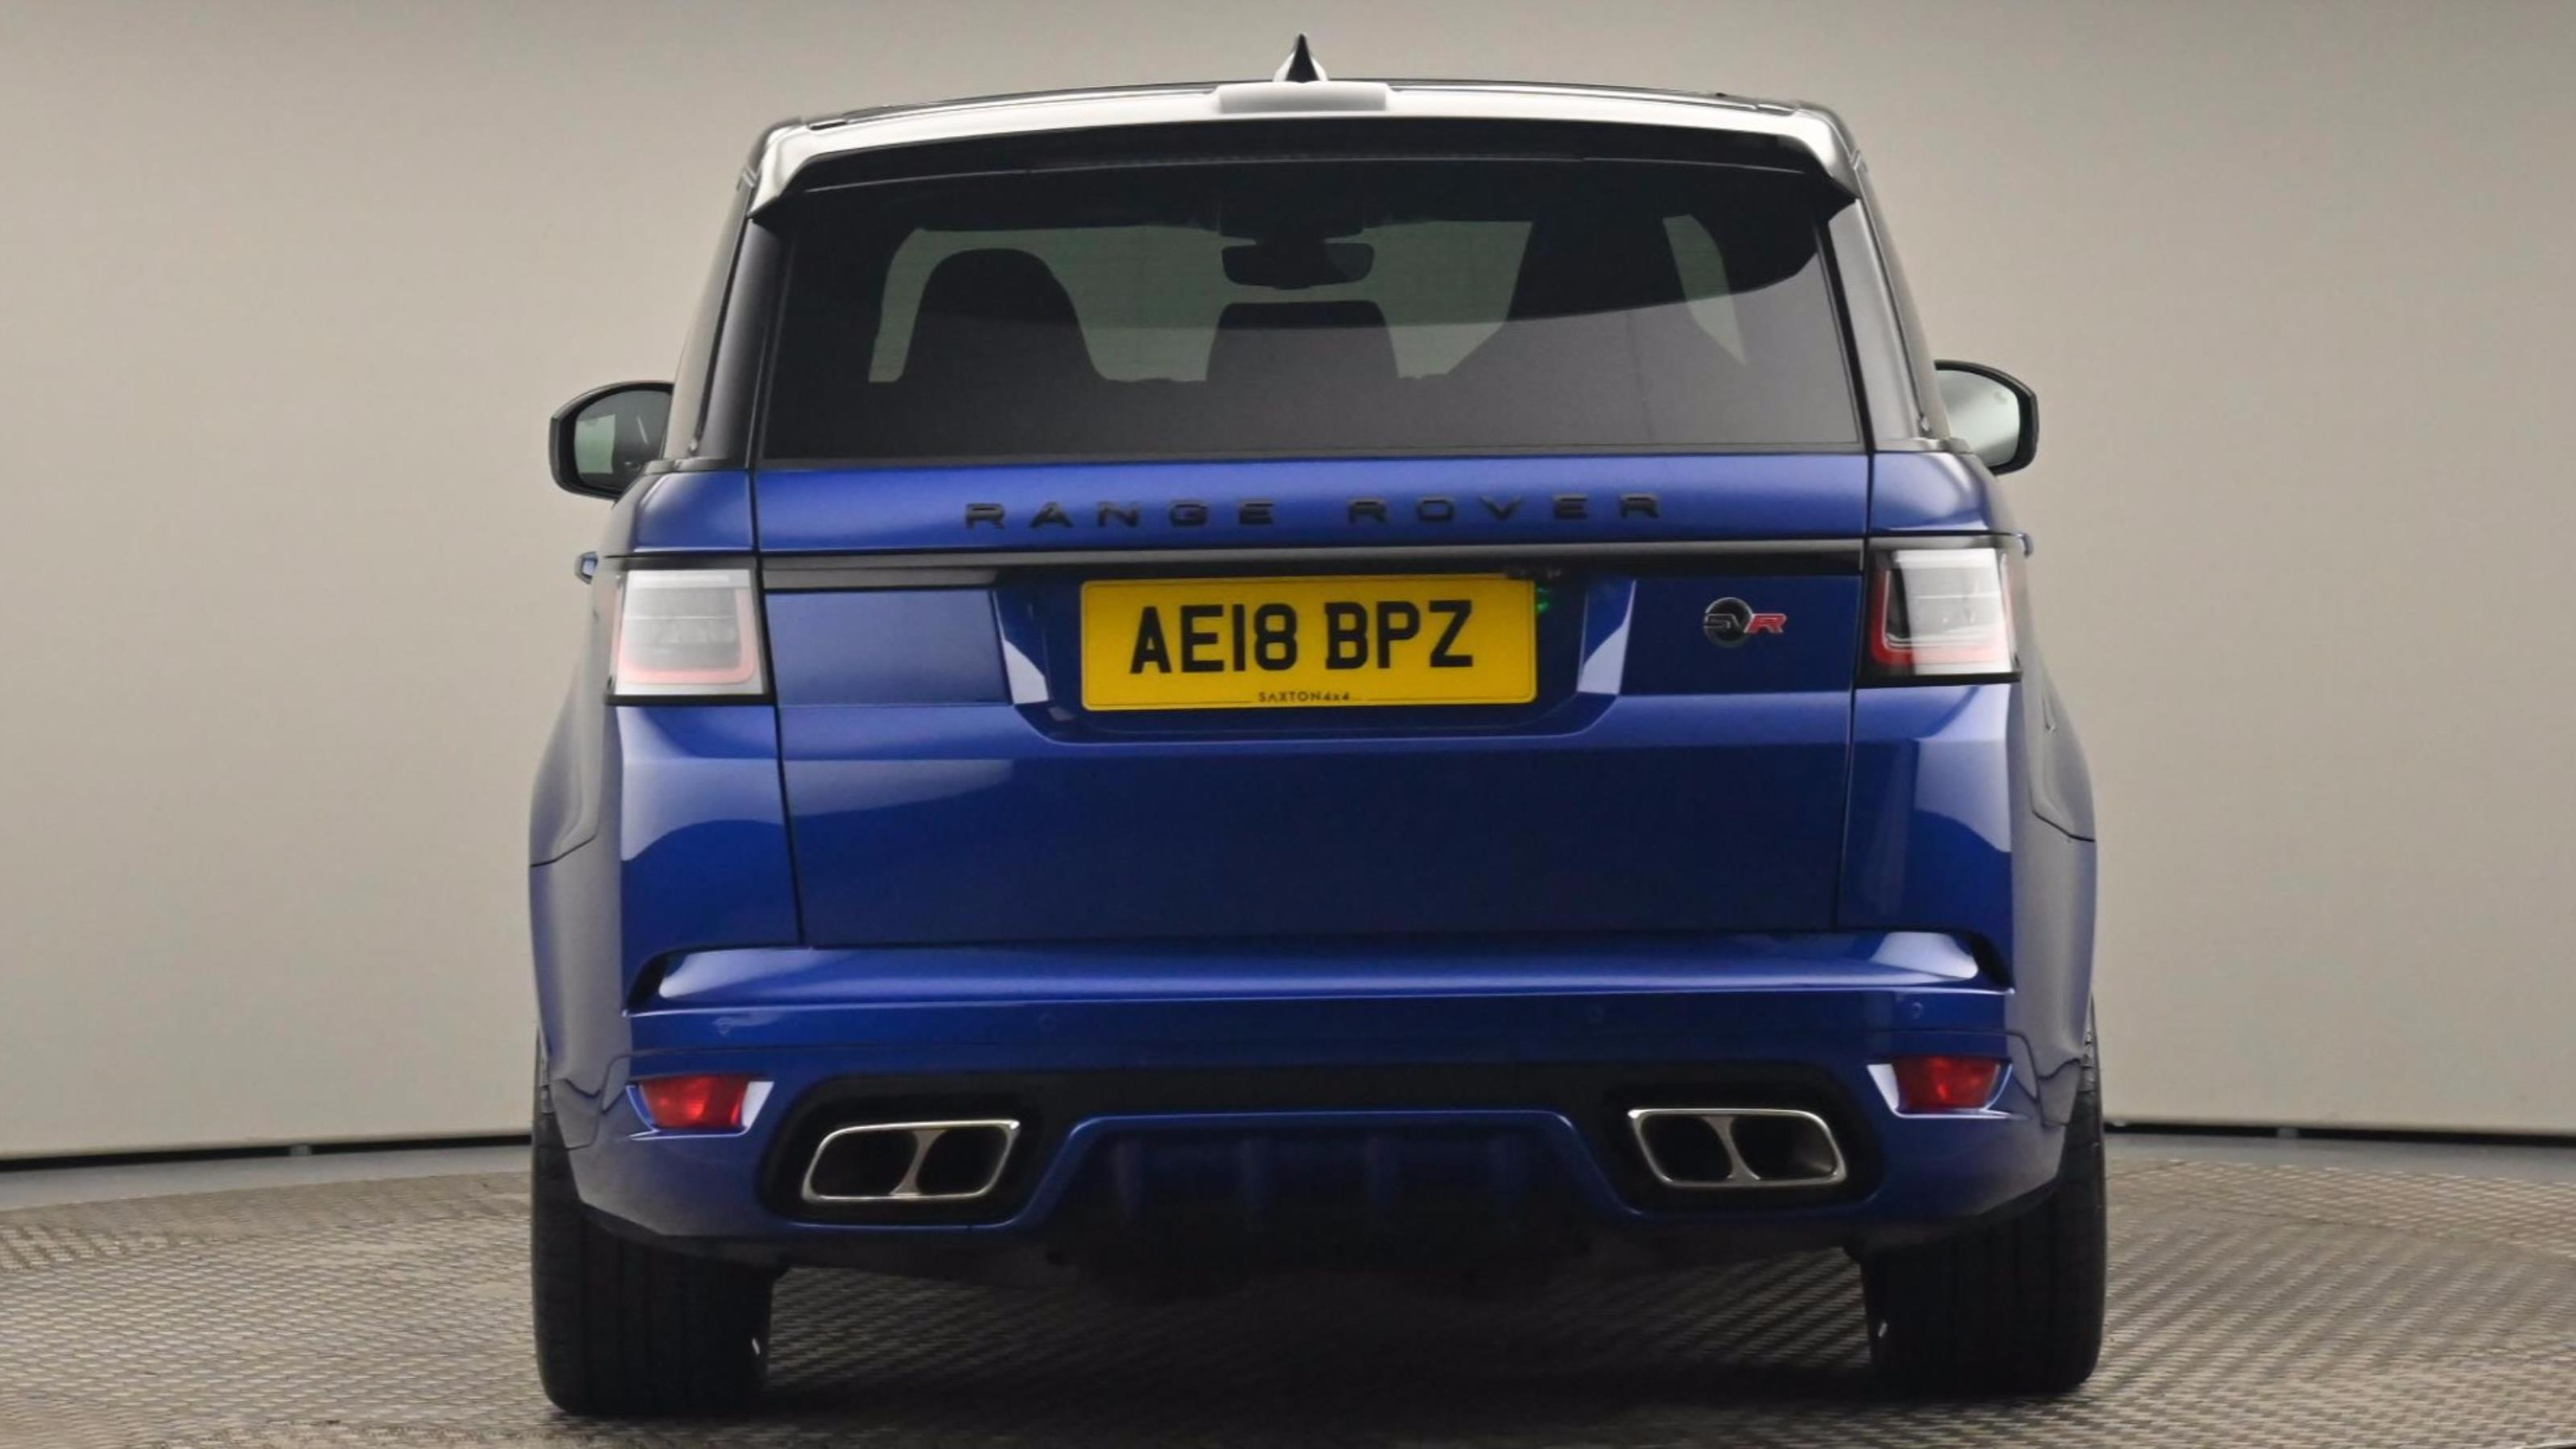 Used 2018 Land Rover RANGE ROVER SPORT 5.0 V8 S/C 575 SVR 5dr Auto           at Saxton4x4